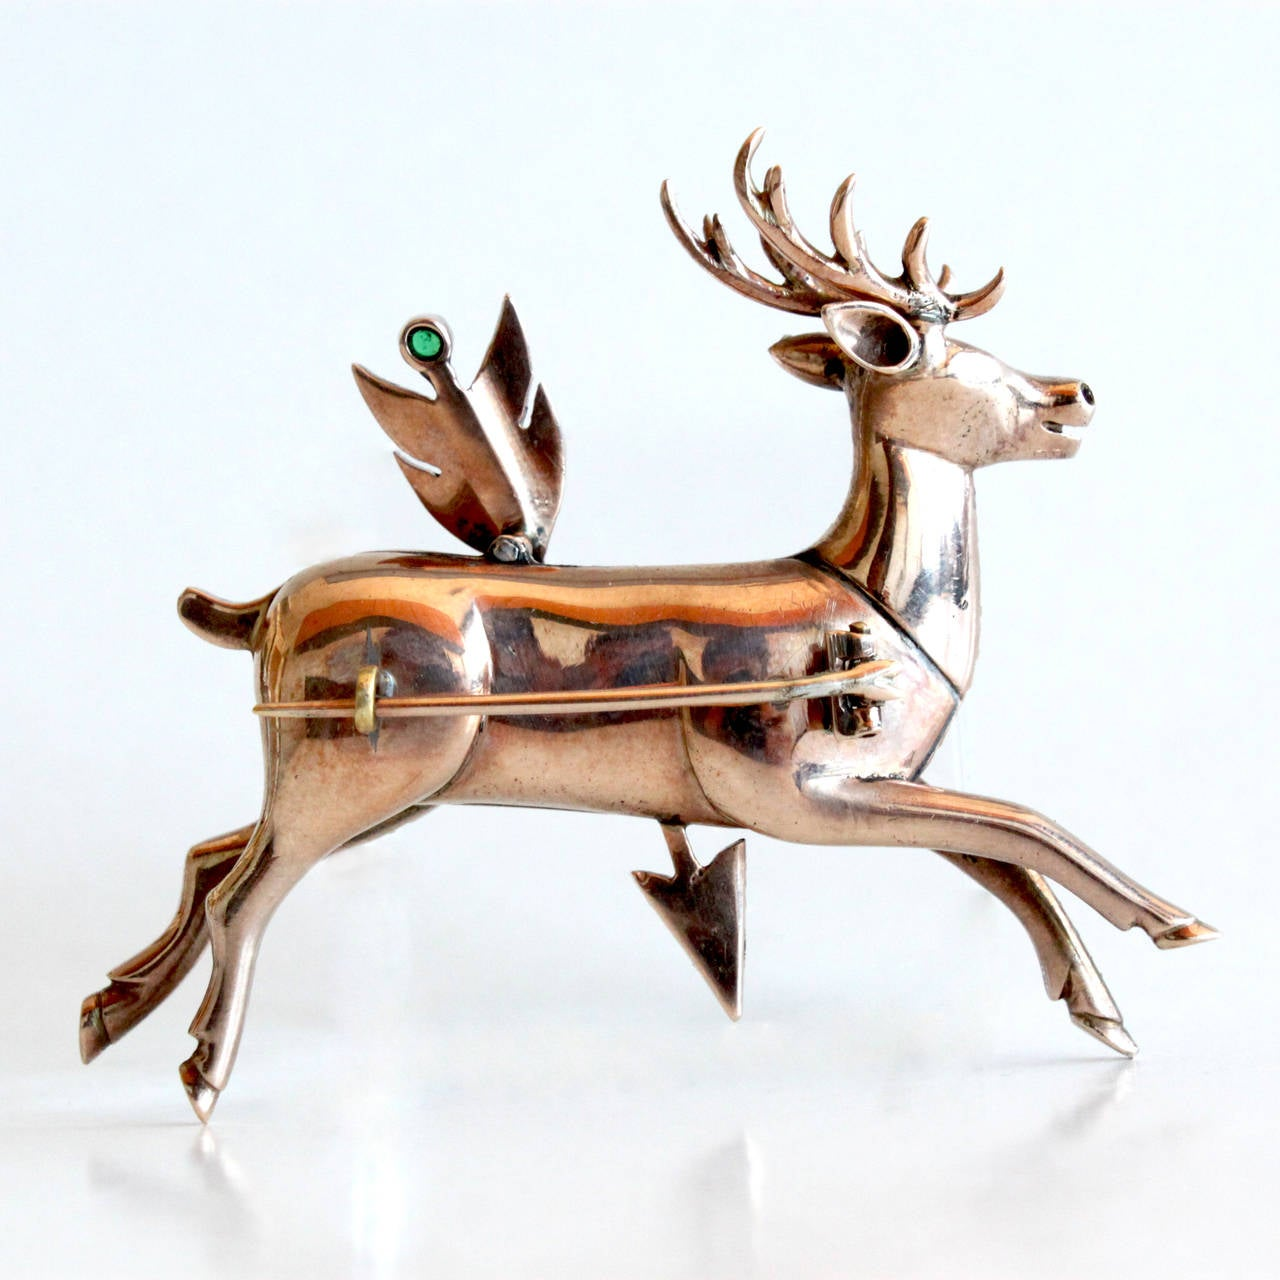 1870s Antique Diamond Deer Stag and Arrow Brooch 2